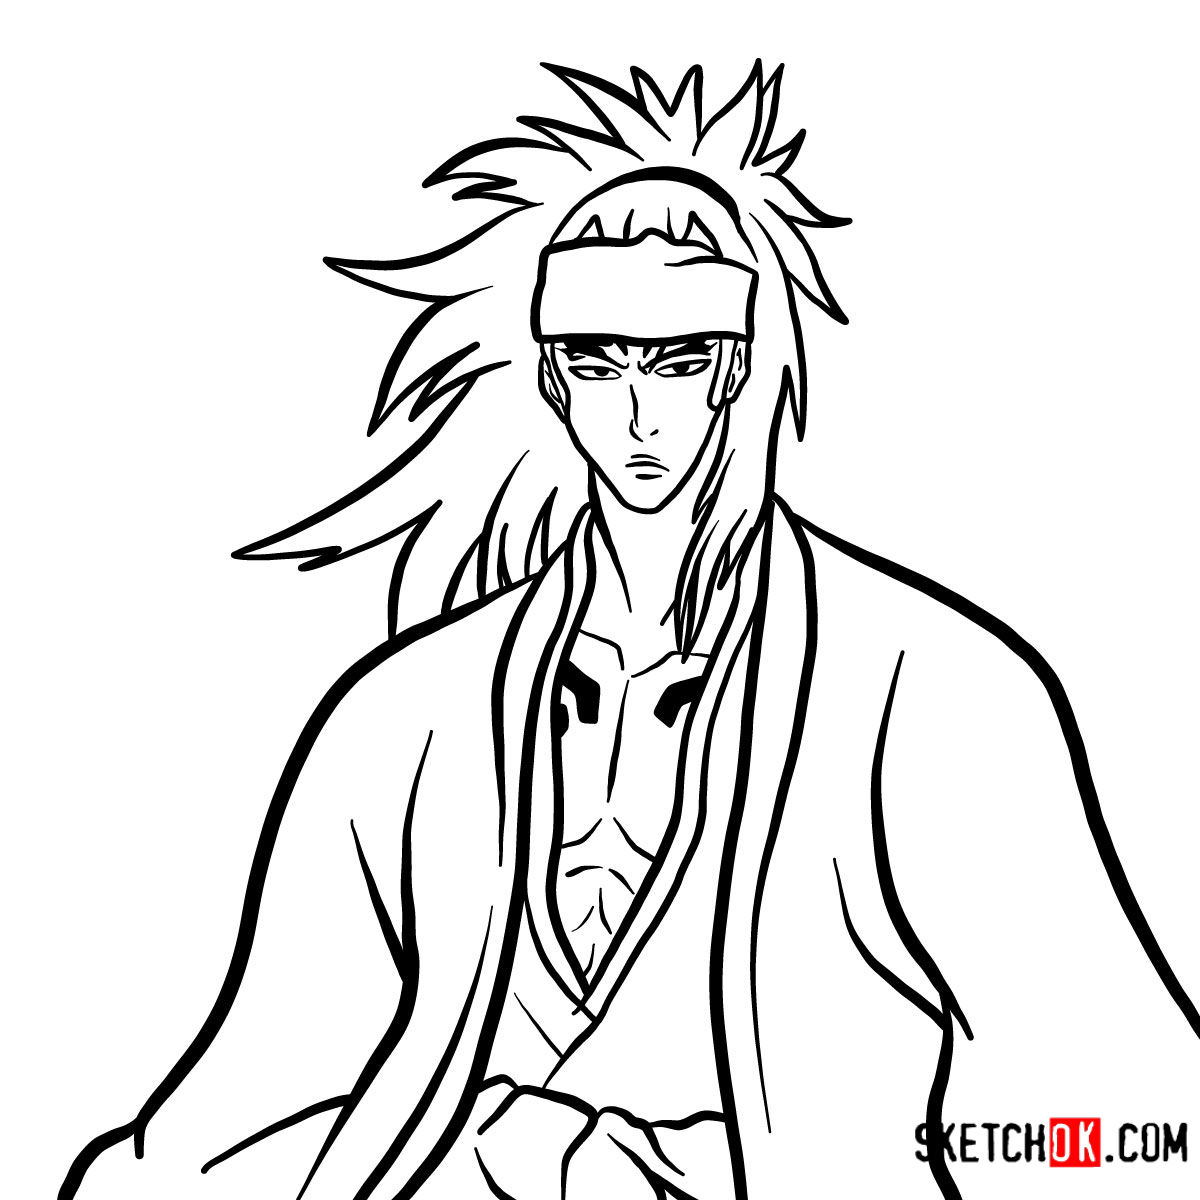 How to draw Renji Abarai's portrait